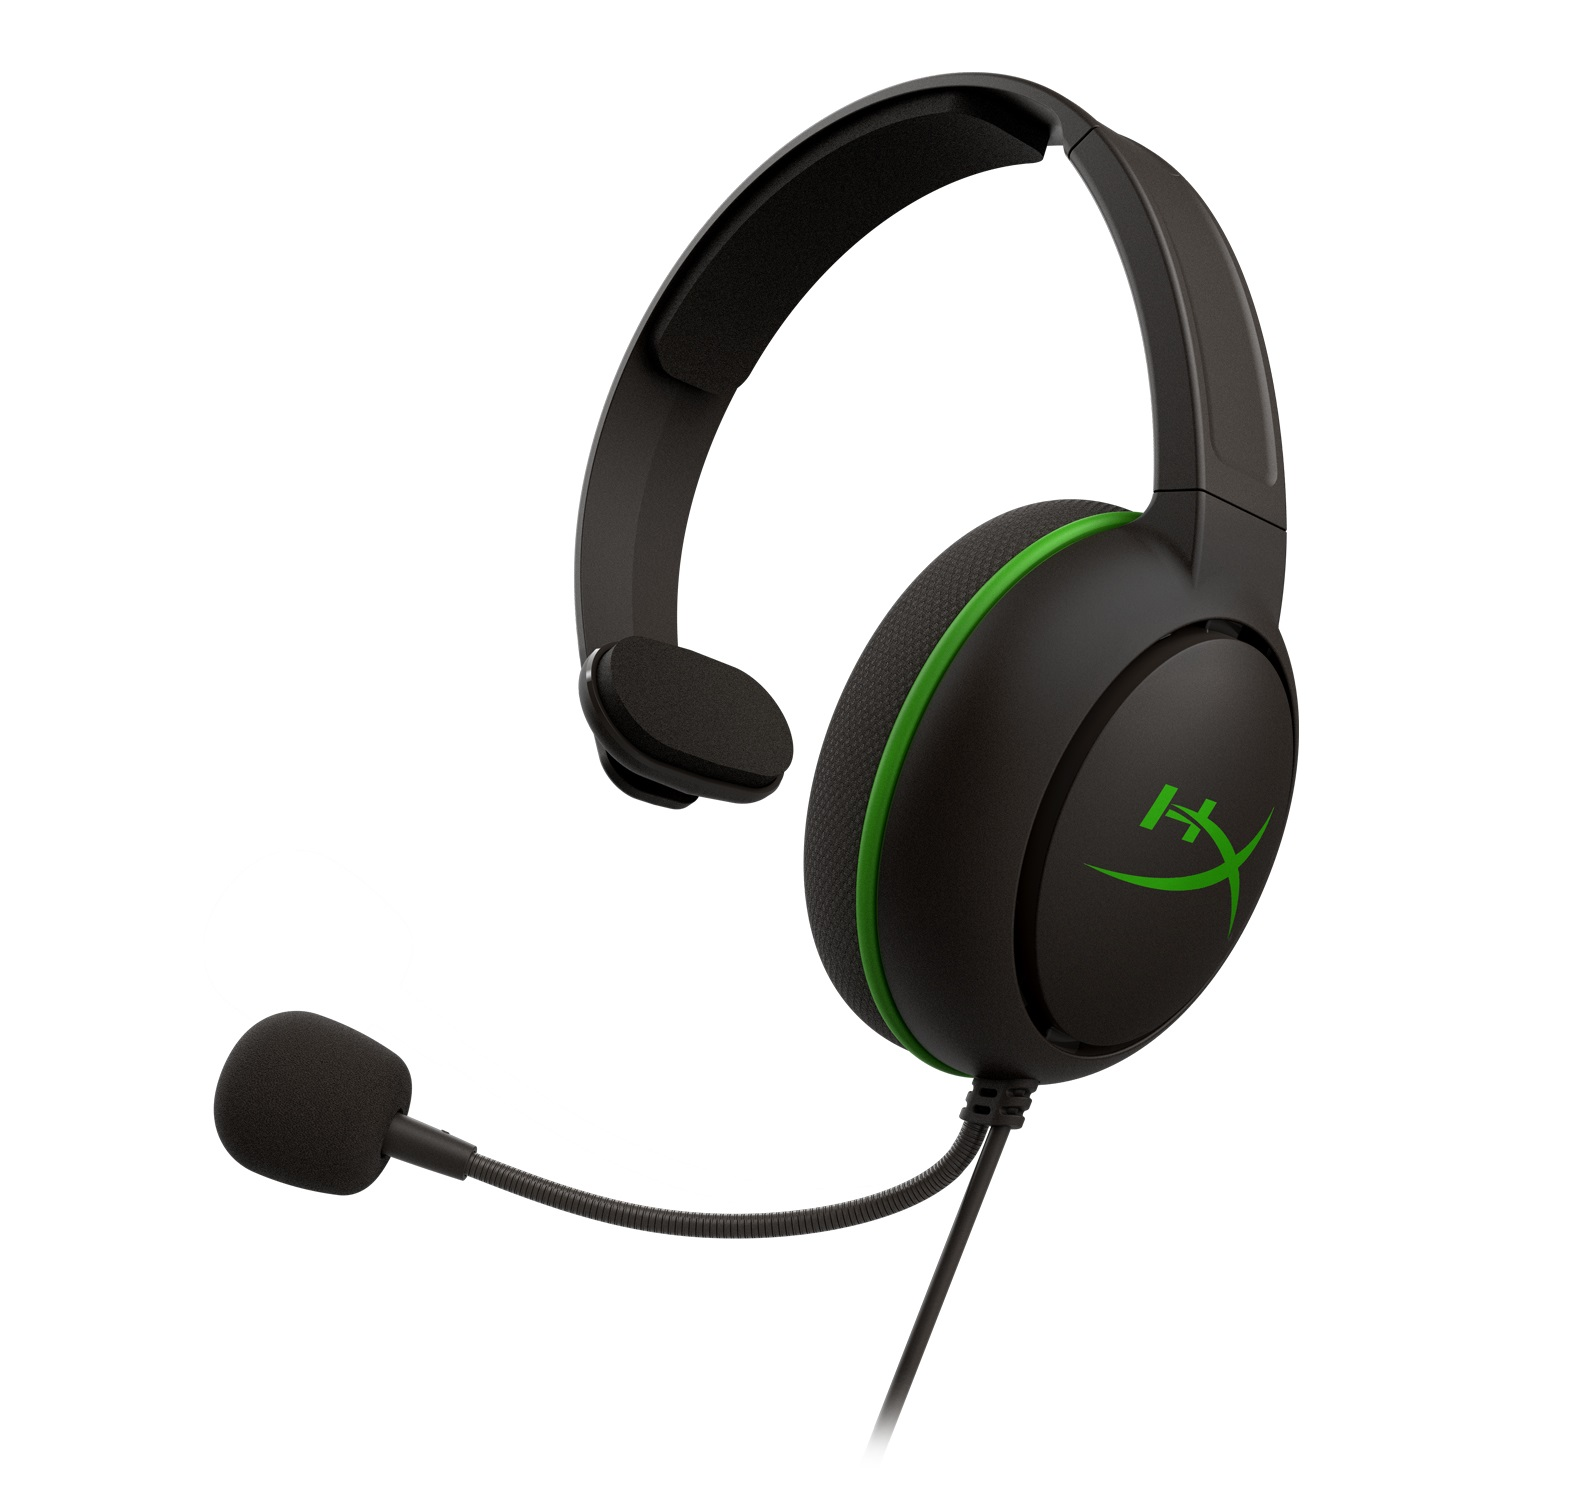 hyperx_cloudx_chat_headset